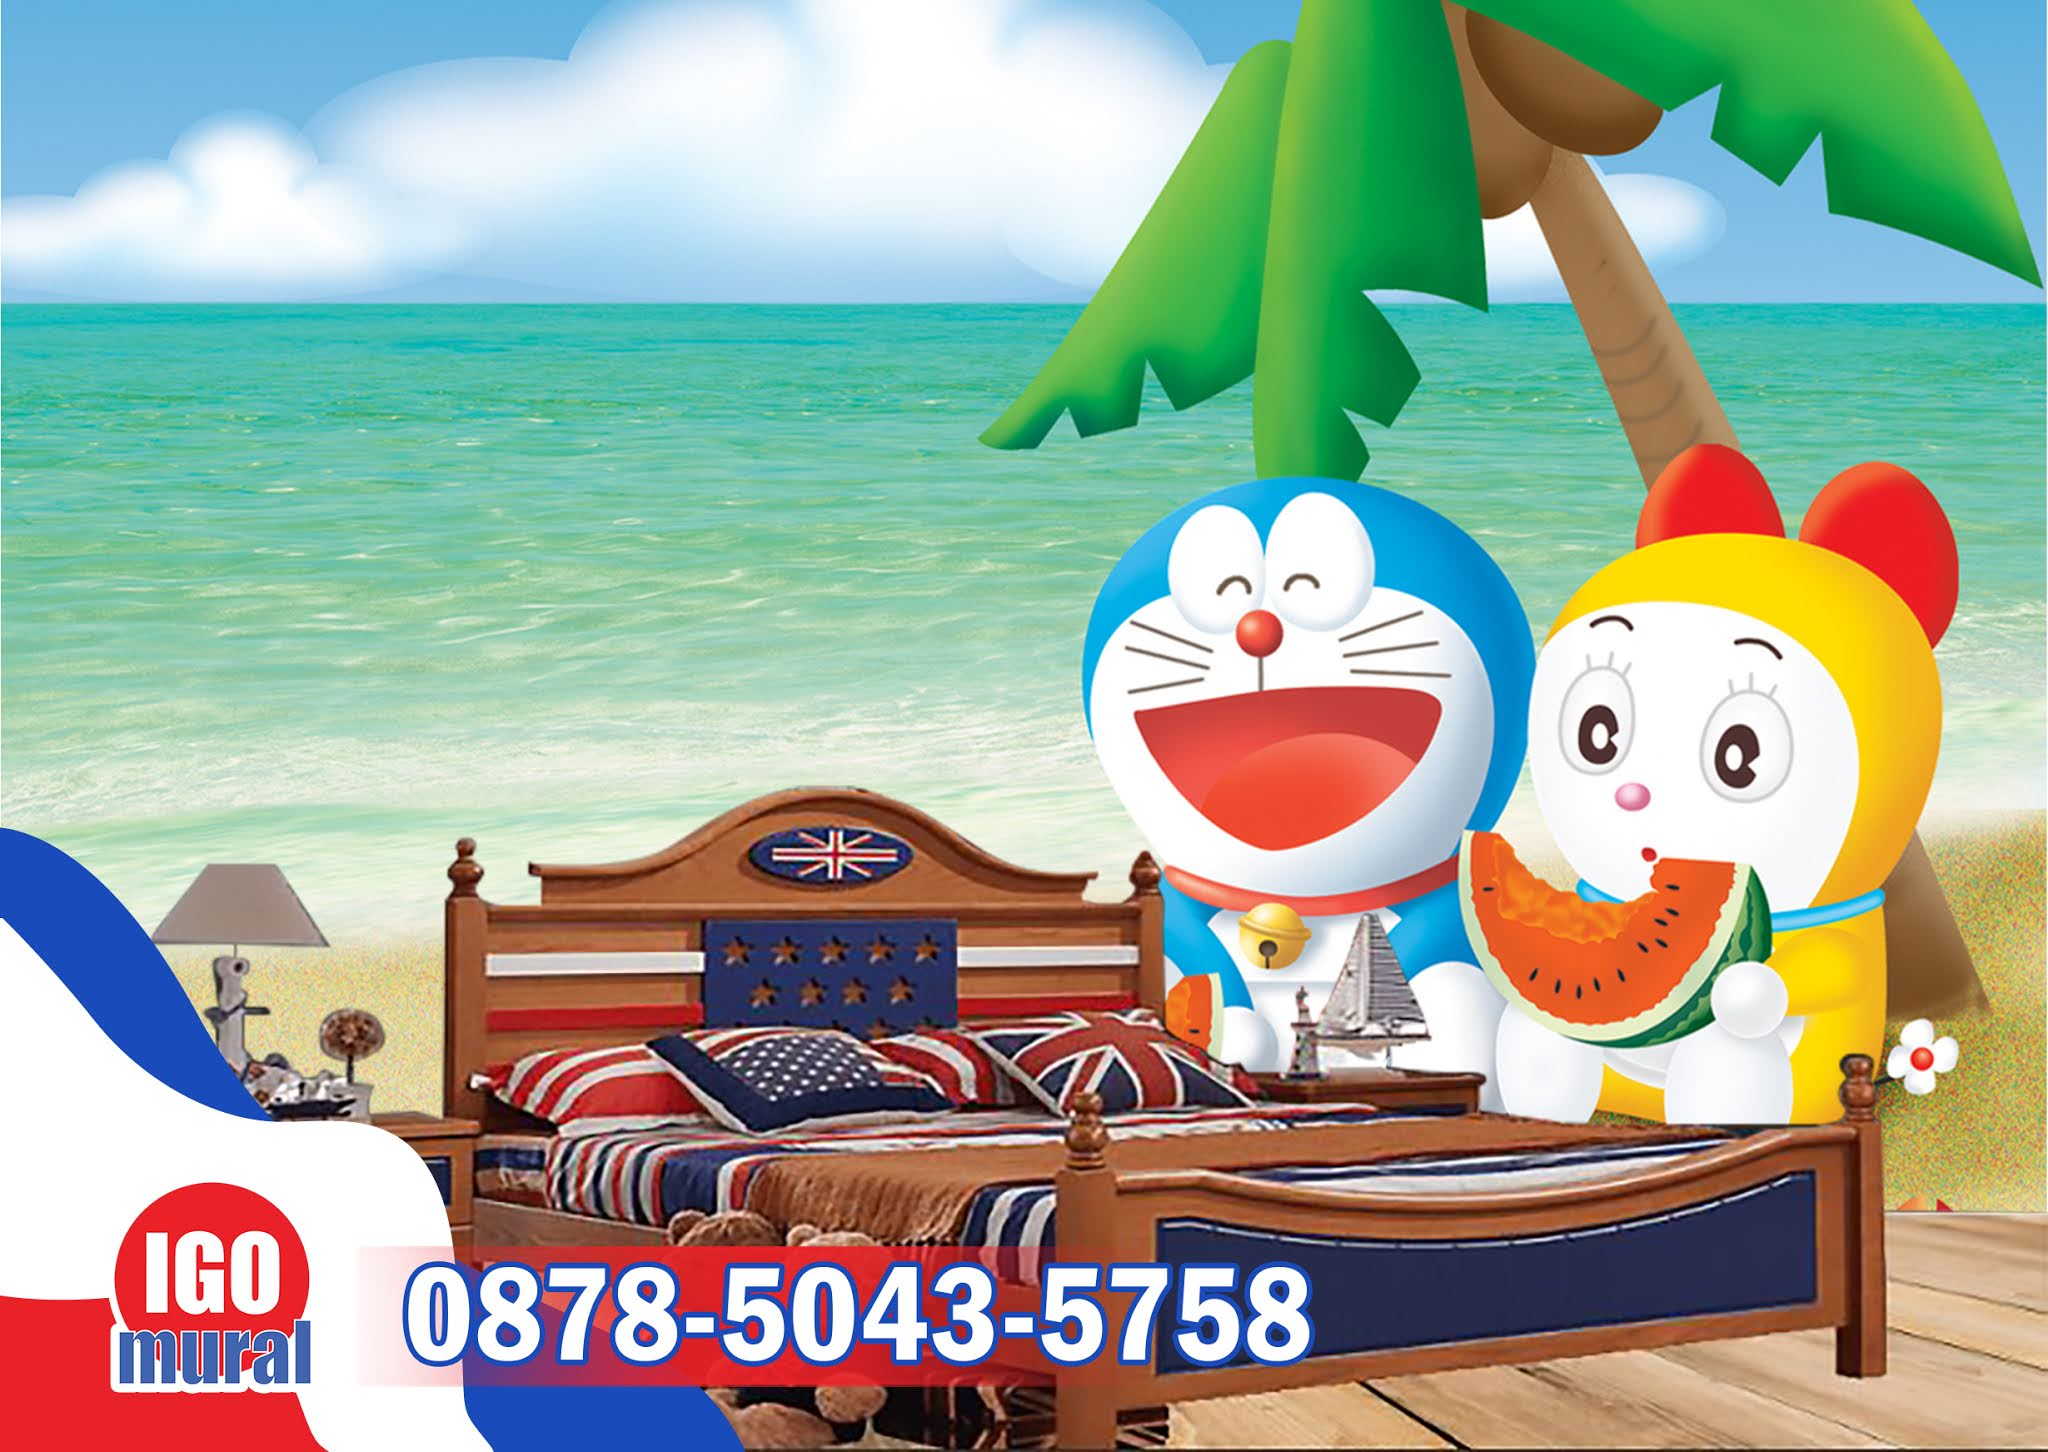 Wallpaper dinding doraemon